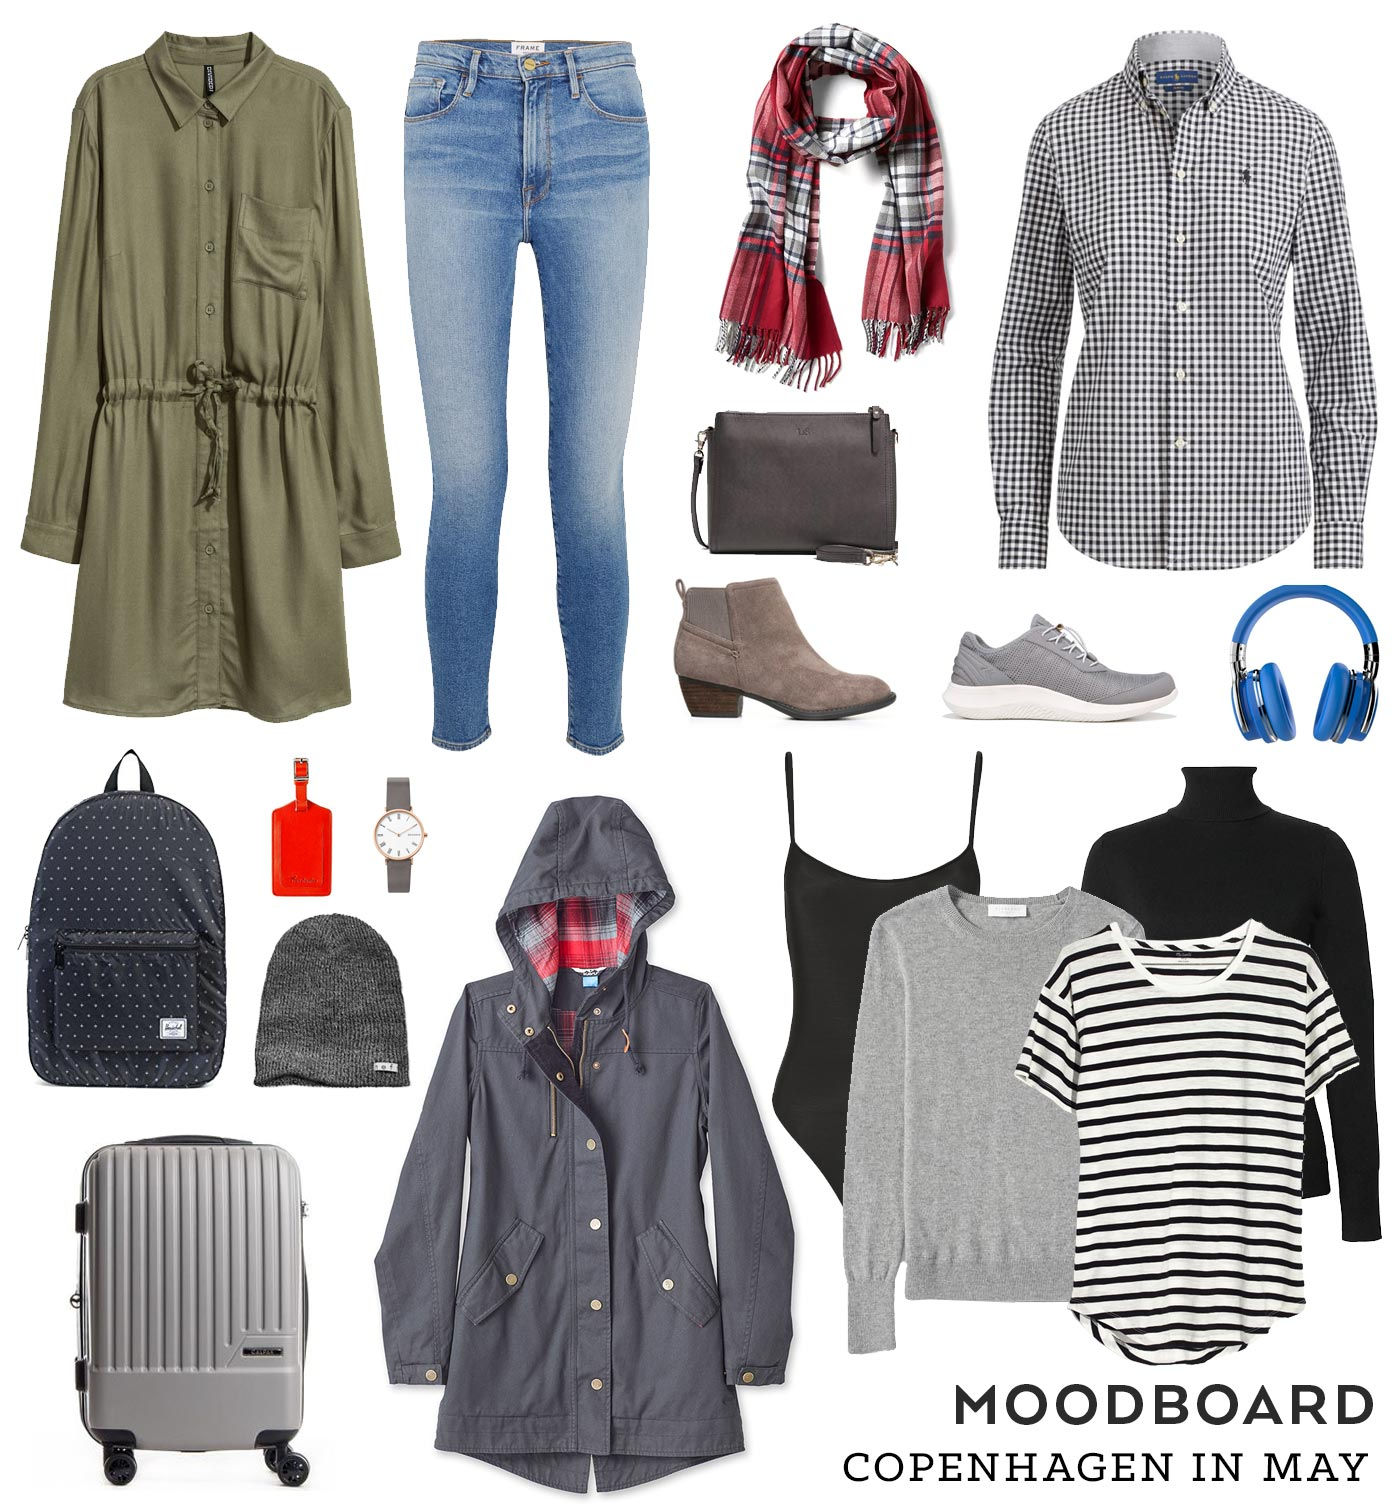 Moodboard – Copenhagen in May Travel Wardrobe | Sew DIY